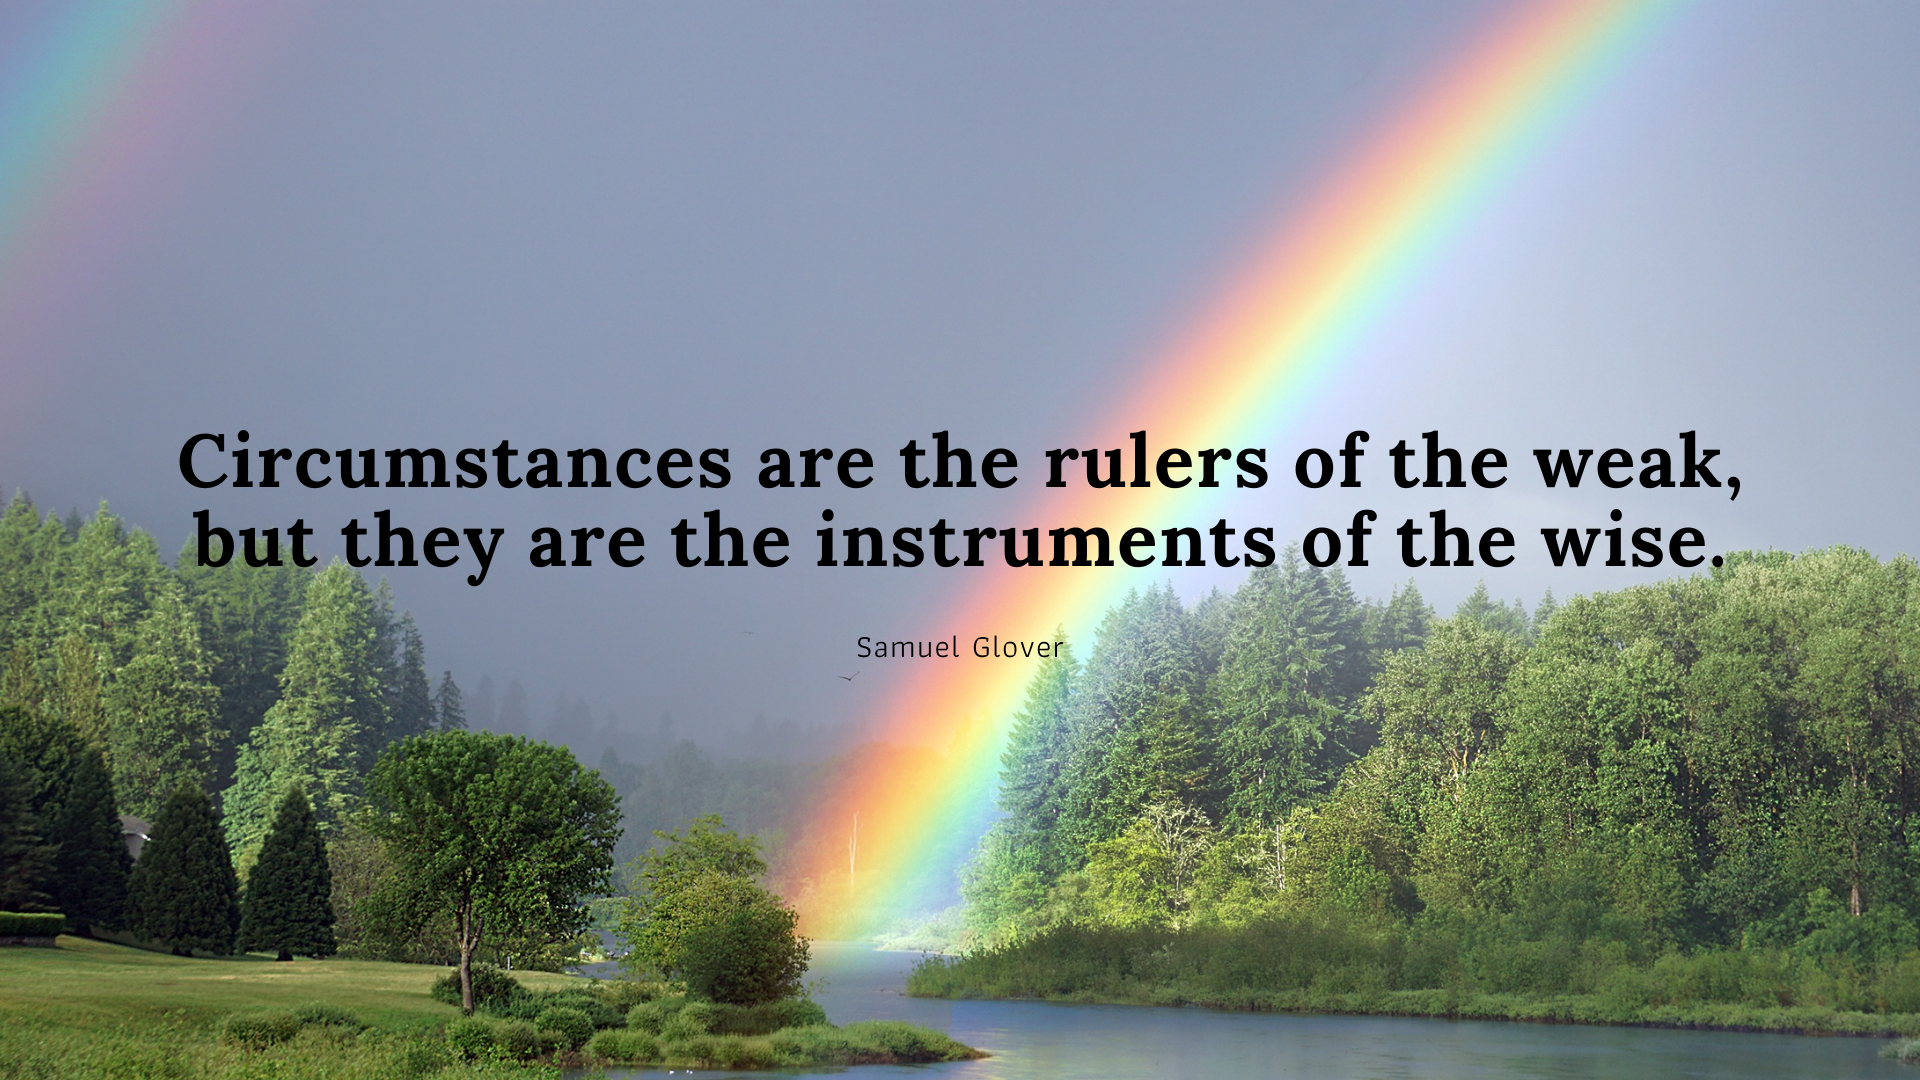 Circumstances are the rulers of the weak, but they are the instruments of the wise. – Samuel Glover[1920×1080]